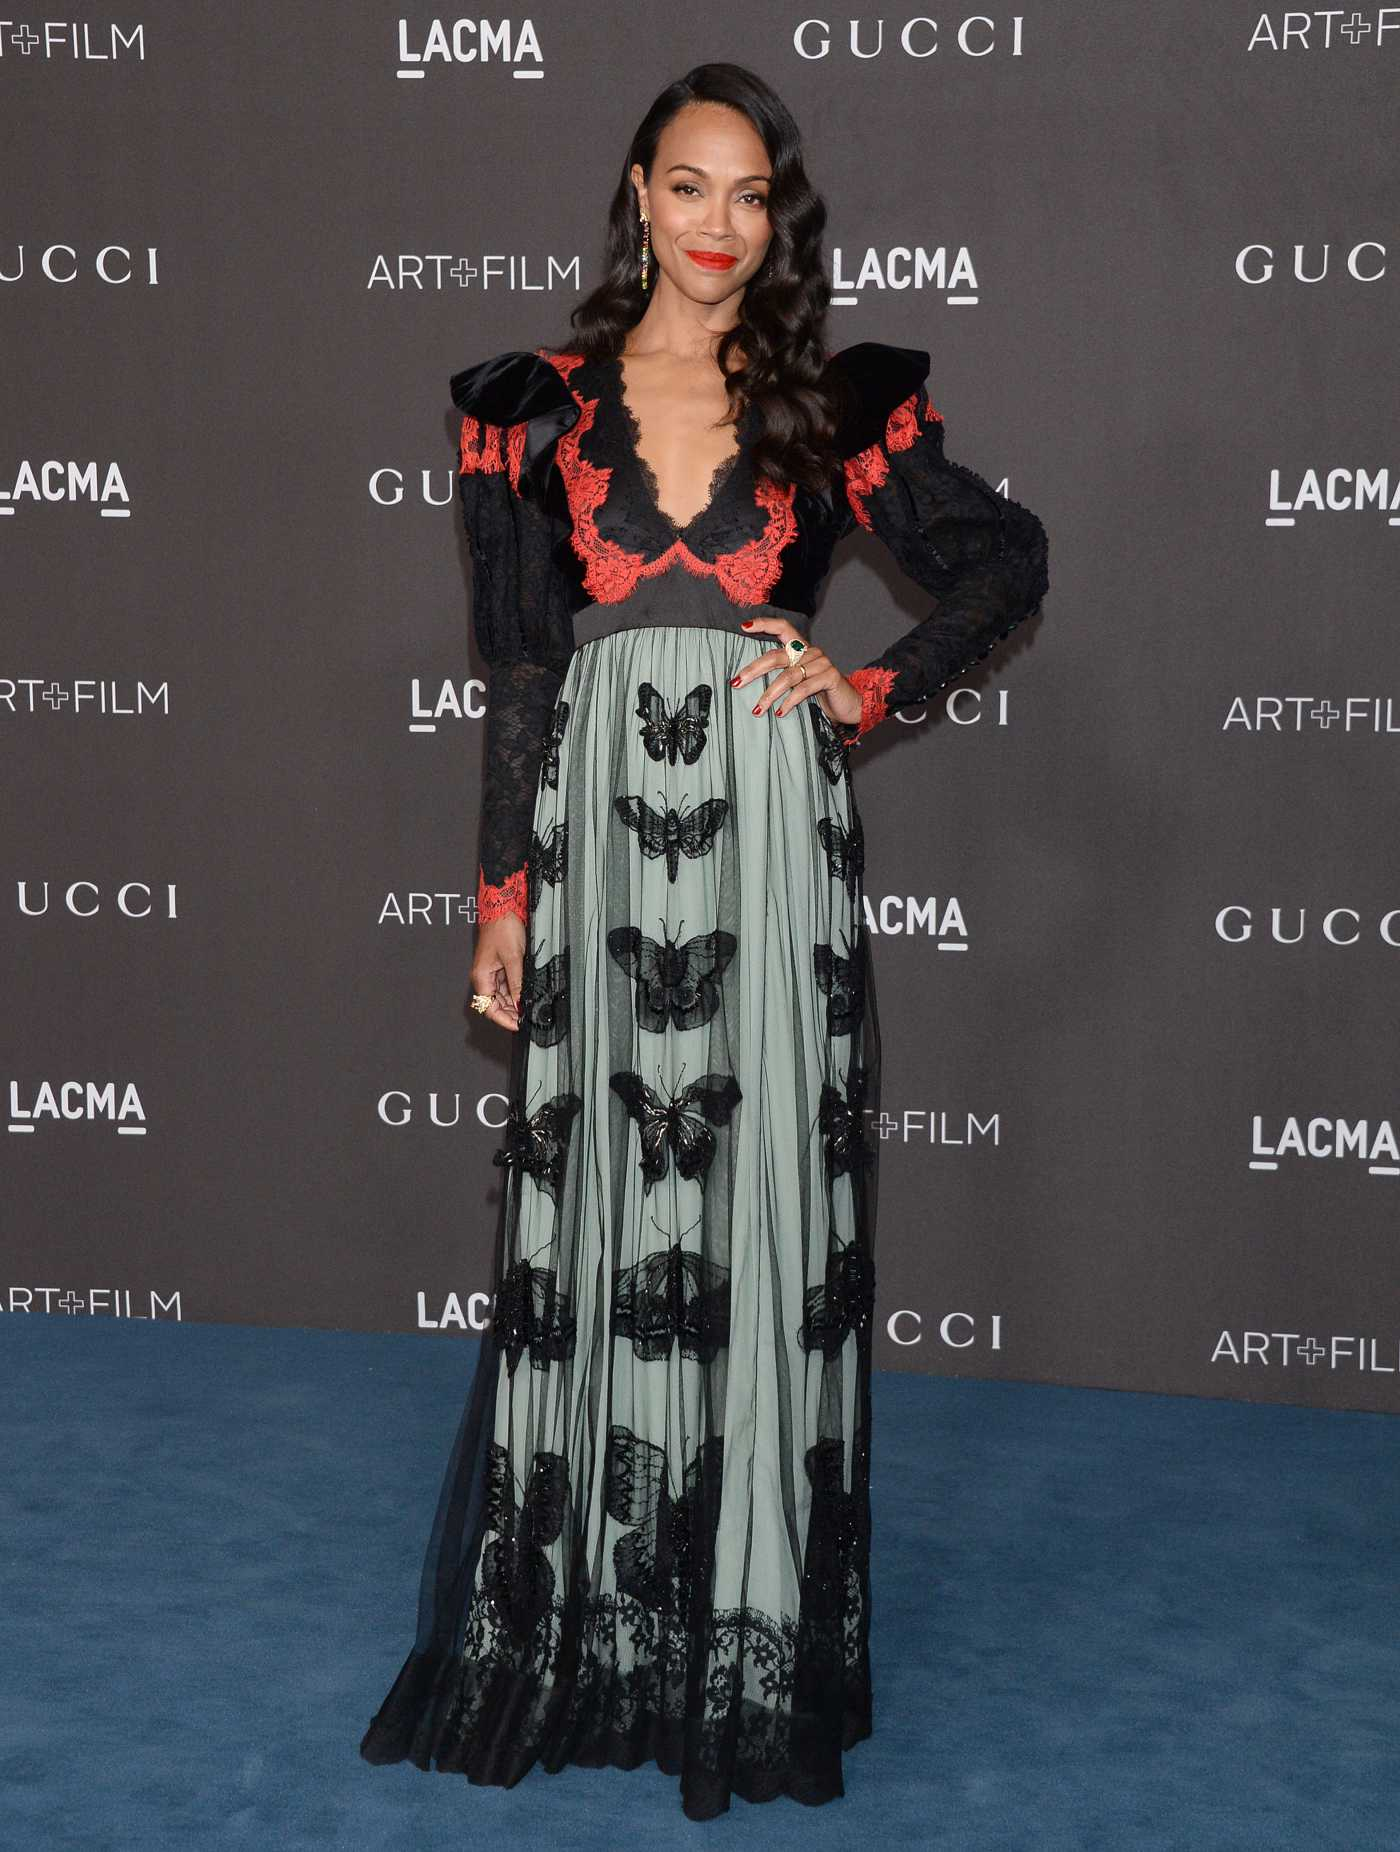 Zoe Saldana Attends 2019 LACMA Art + Film Gala Honoring Betye Saar And Alfonso Cuaron Presented By Gucci in Los Angeles 11/02/2019